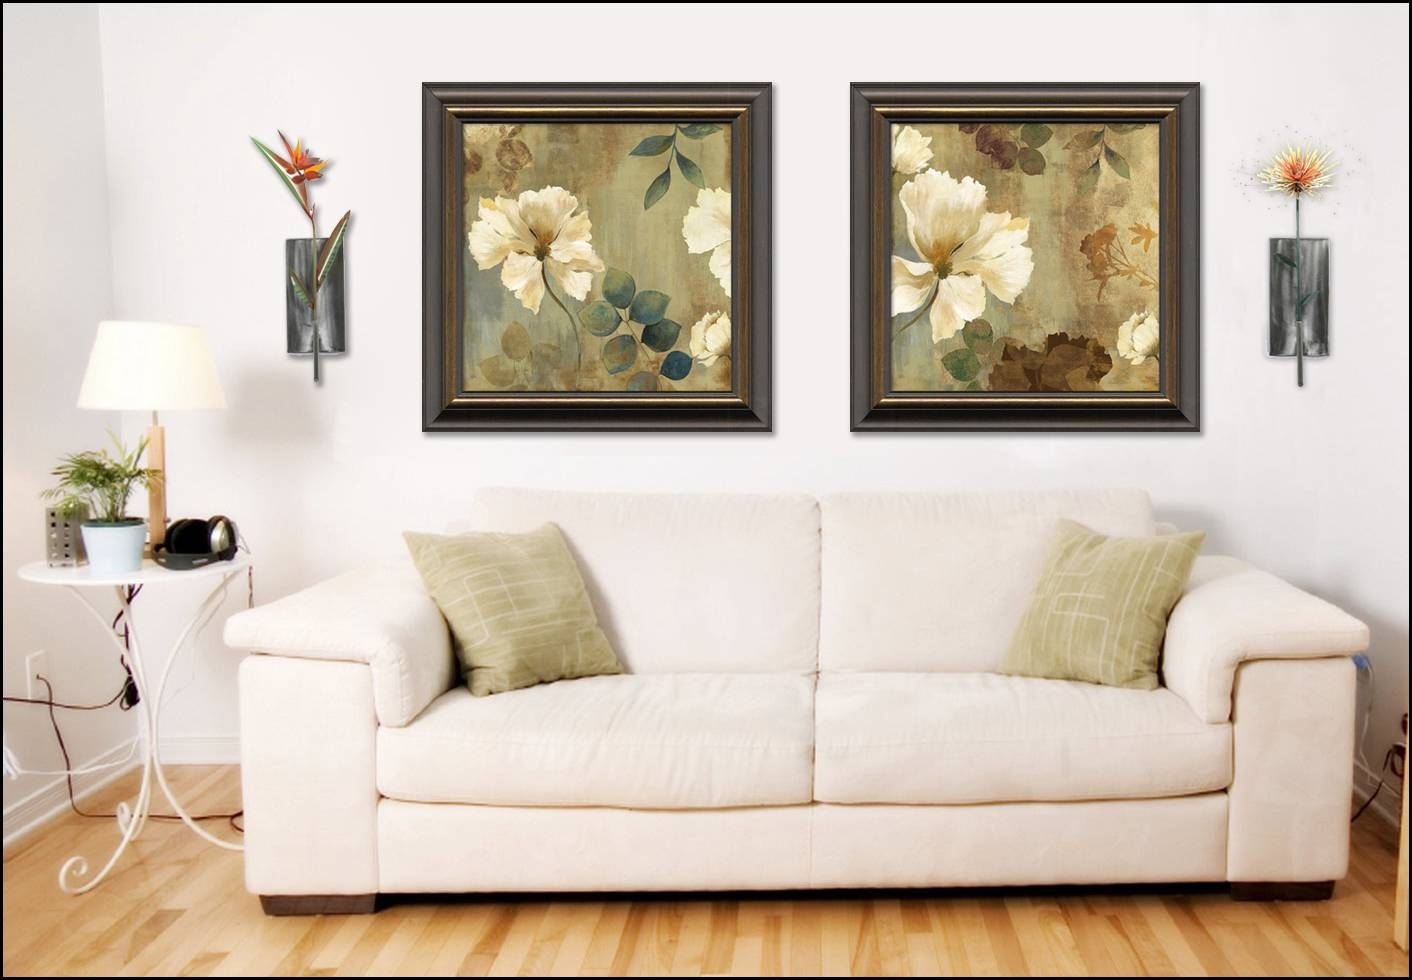 Framedcanvasart Launches Revolutionary Online Art Search Tool Inside Most Recent Oversized Framed Art (View 8 of 20)